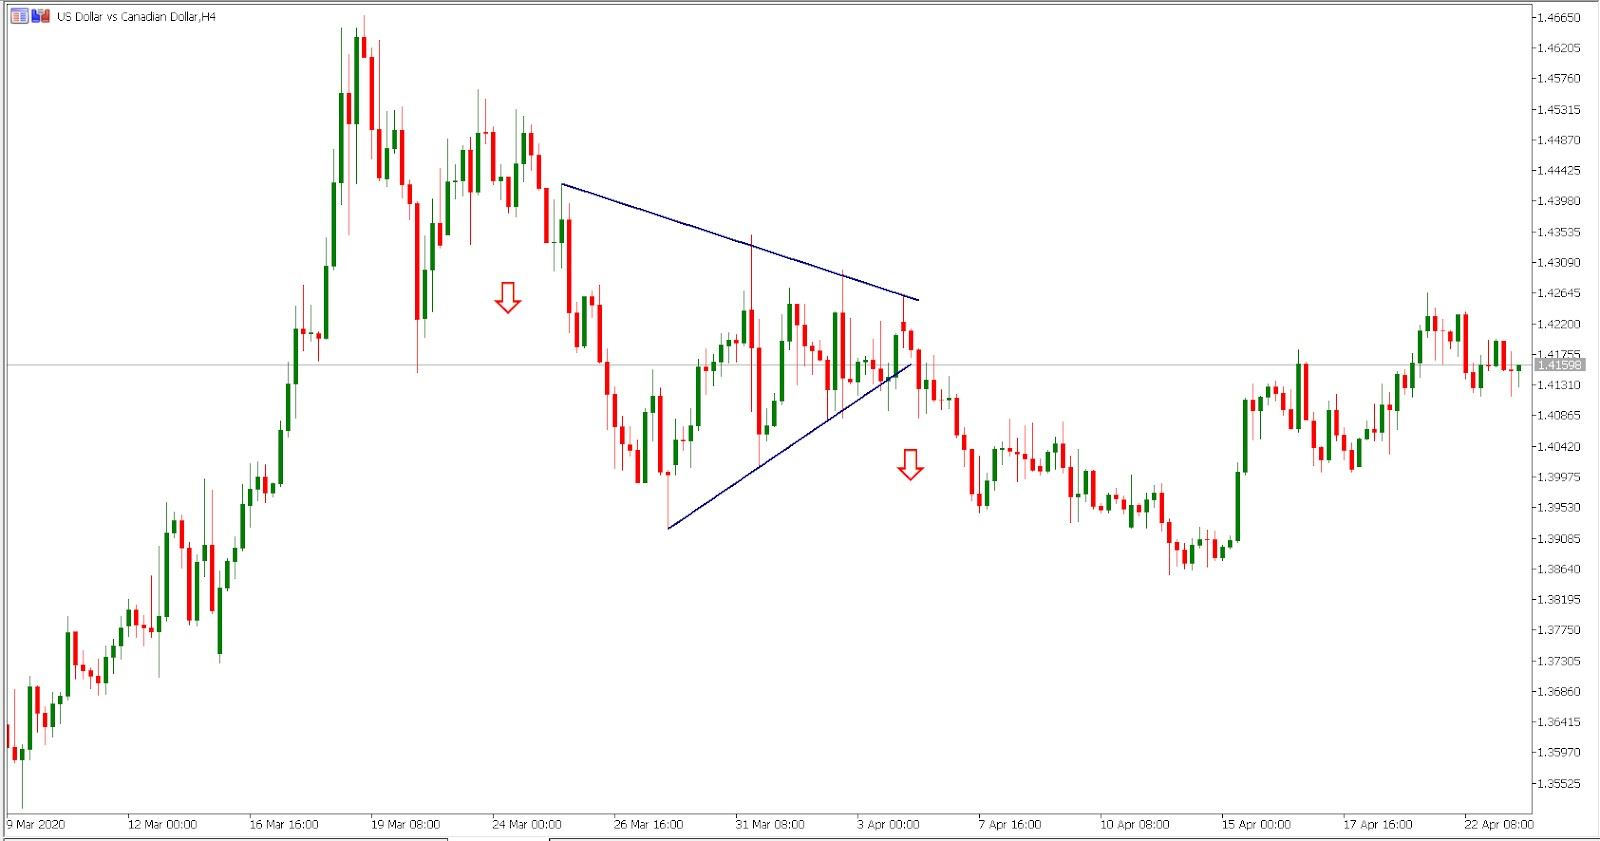 USD/CAD H4 chart - Spotting the pattern